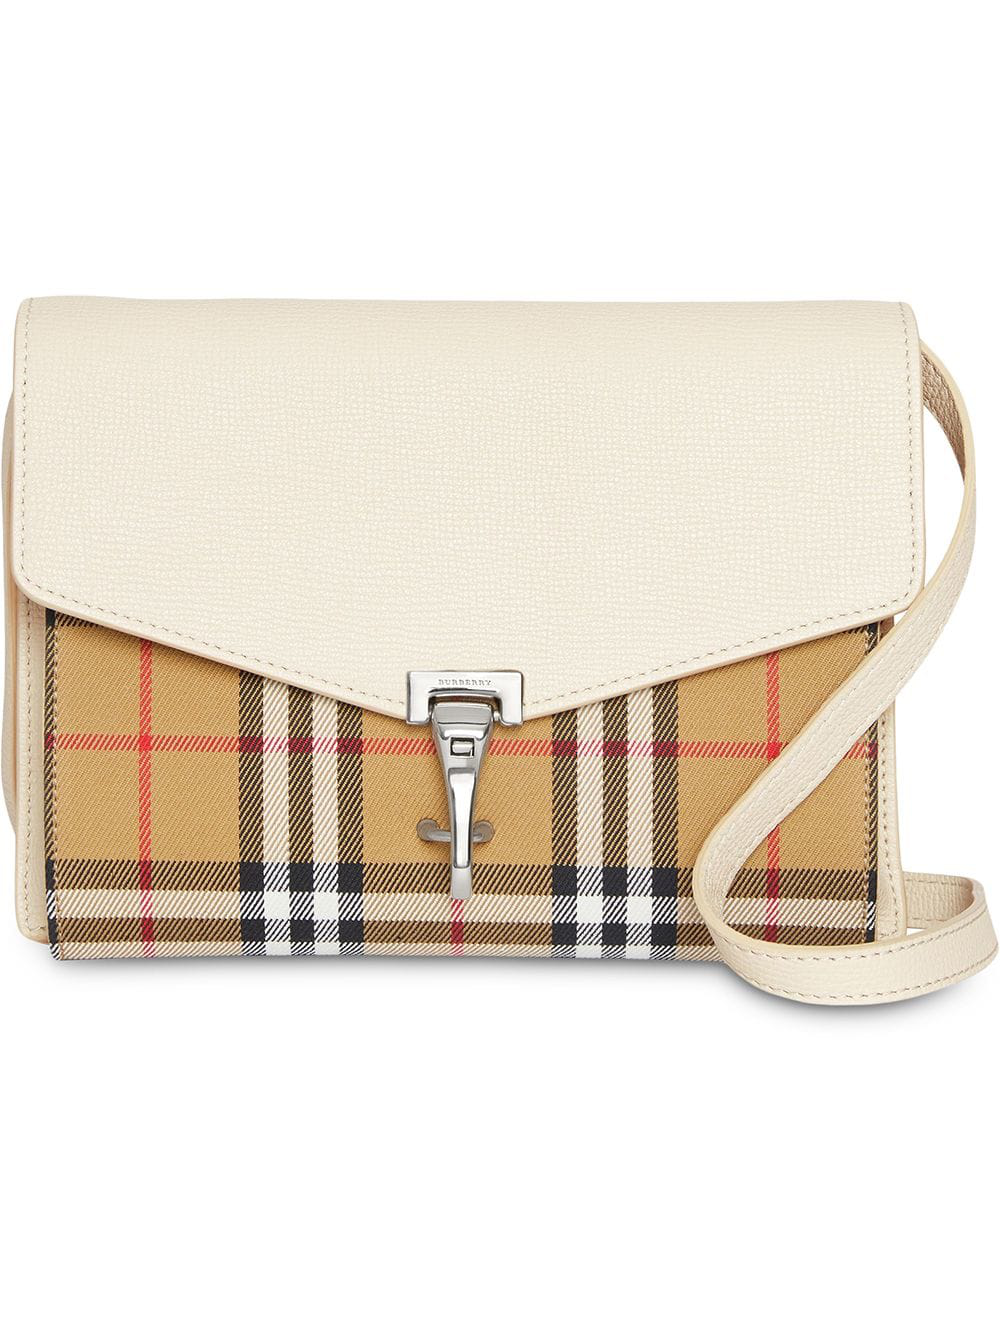 9acd0d08bafe Burberry Small Vintage Check And Leather Crossbody Bag - White ...